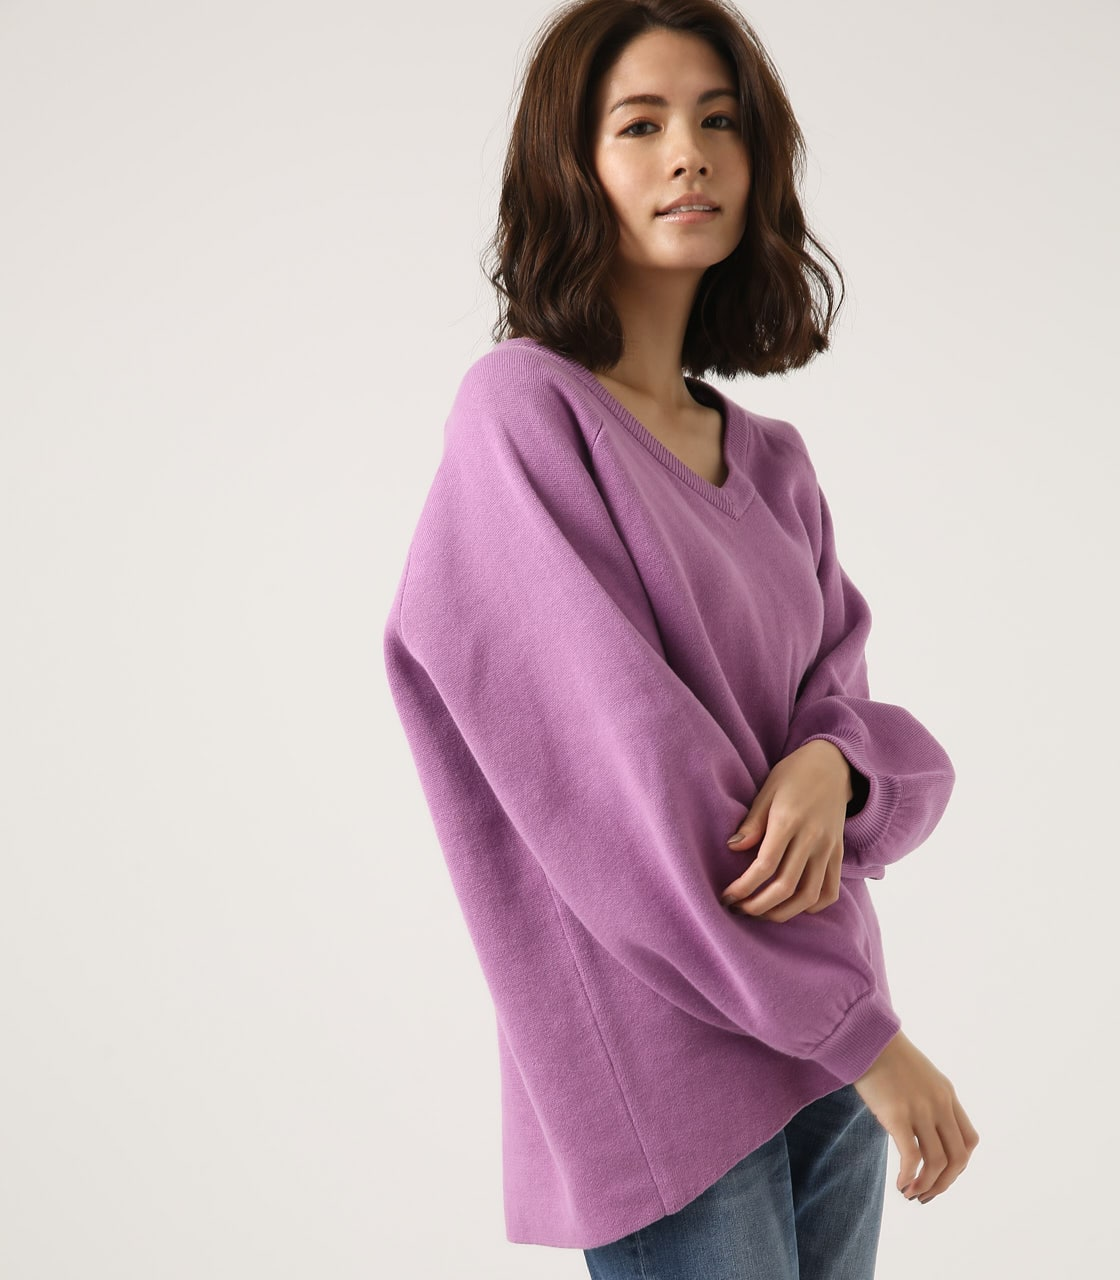 【AZUL BY MOUSSY】SWEATTER Vネック LOOSE TOPS 詳細画像 L/PUR 1